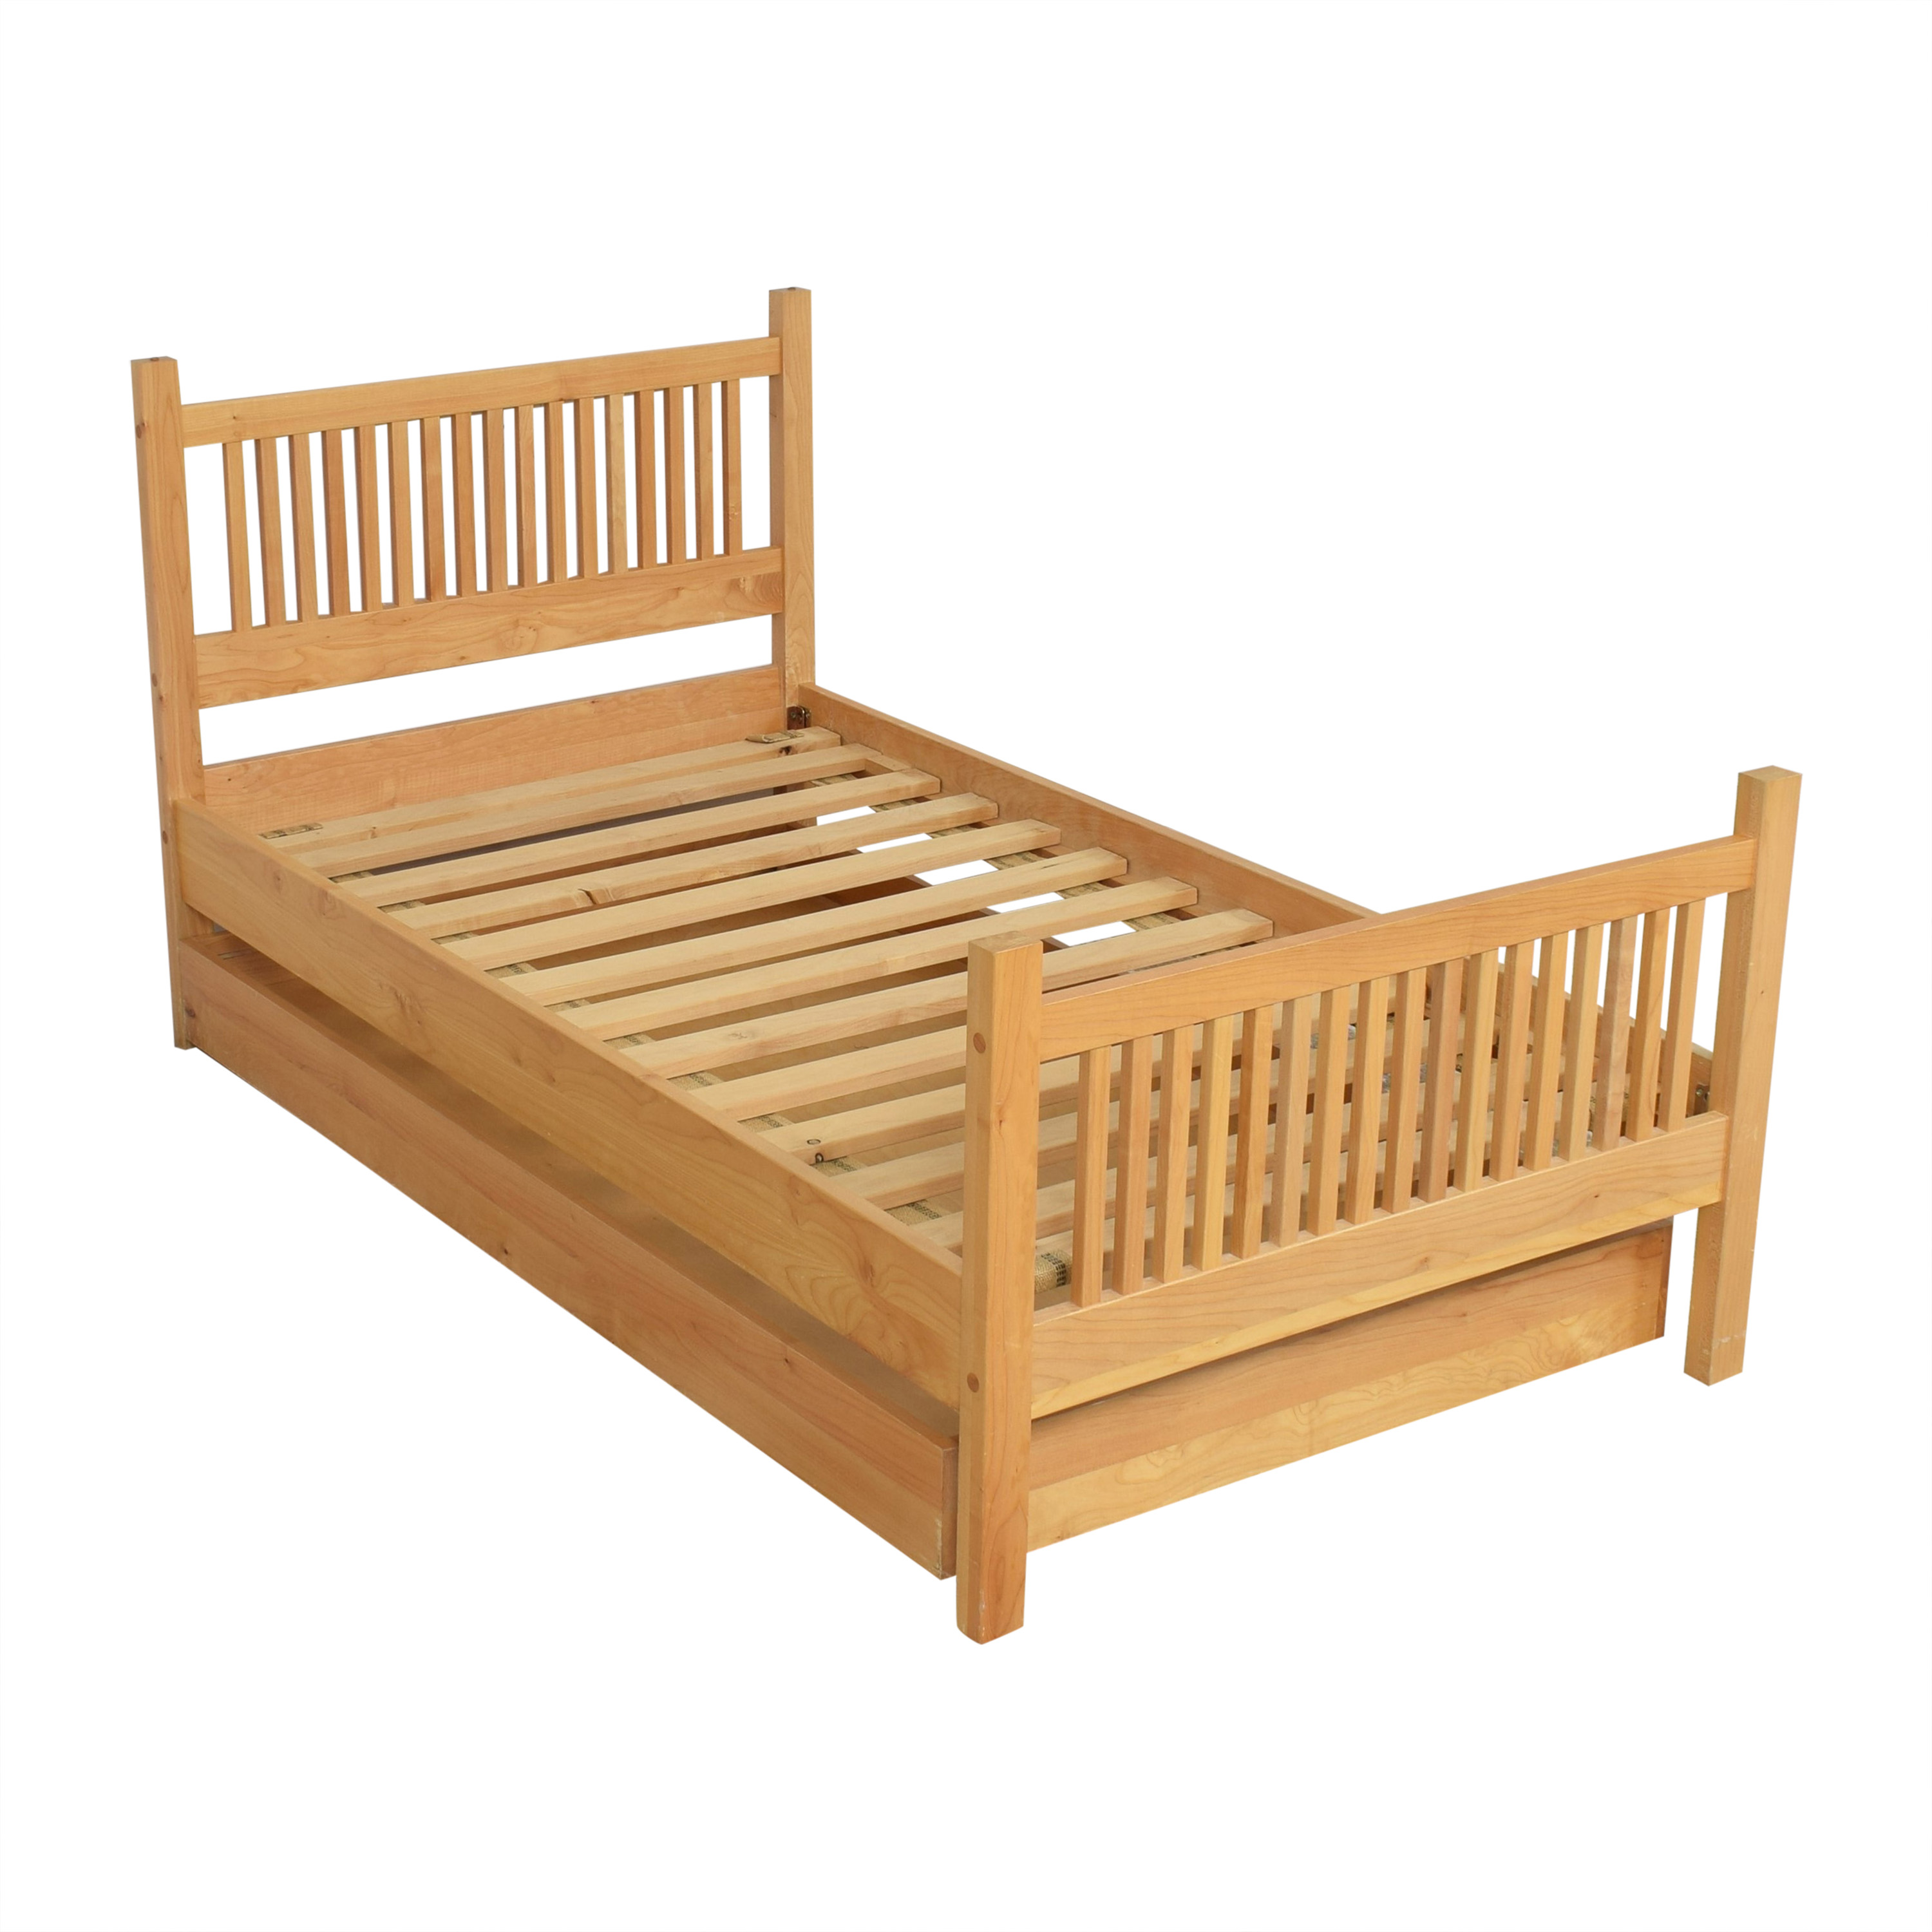 Room & Board Room & Board Riley Twin Bed with Trundle pa